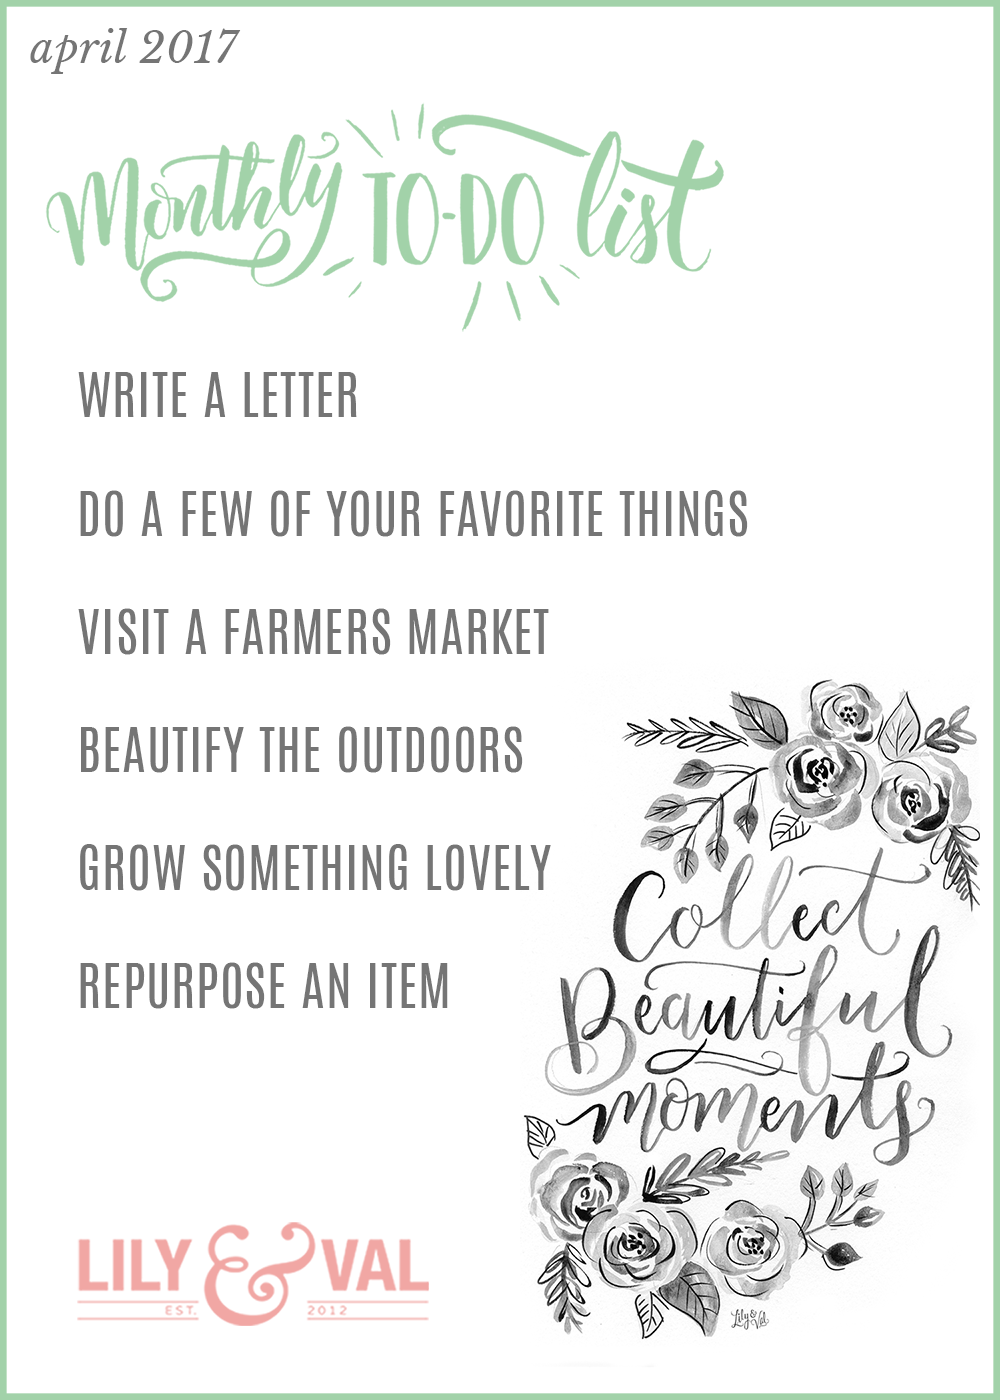 April FREE download | inspiration to do list | April activities